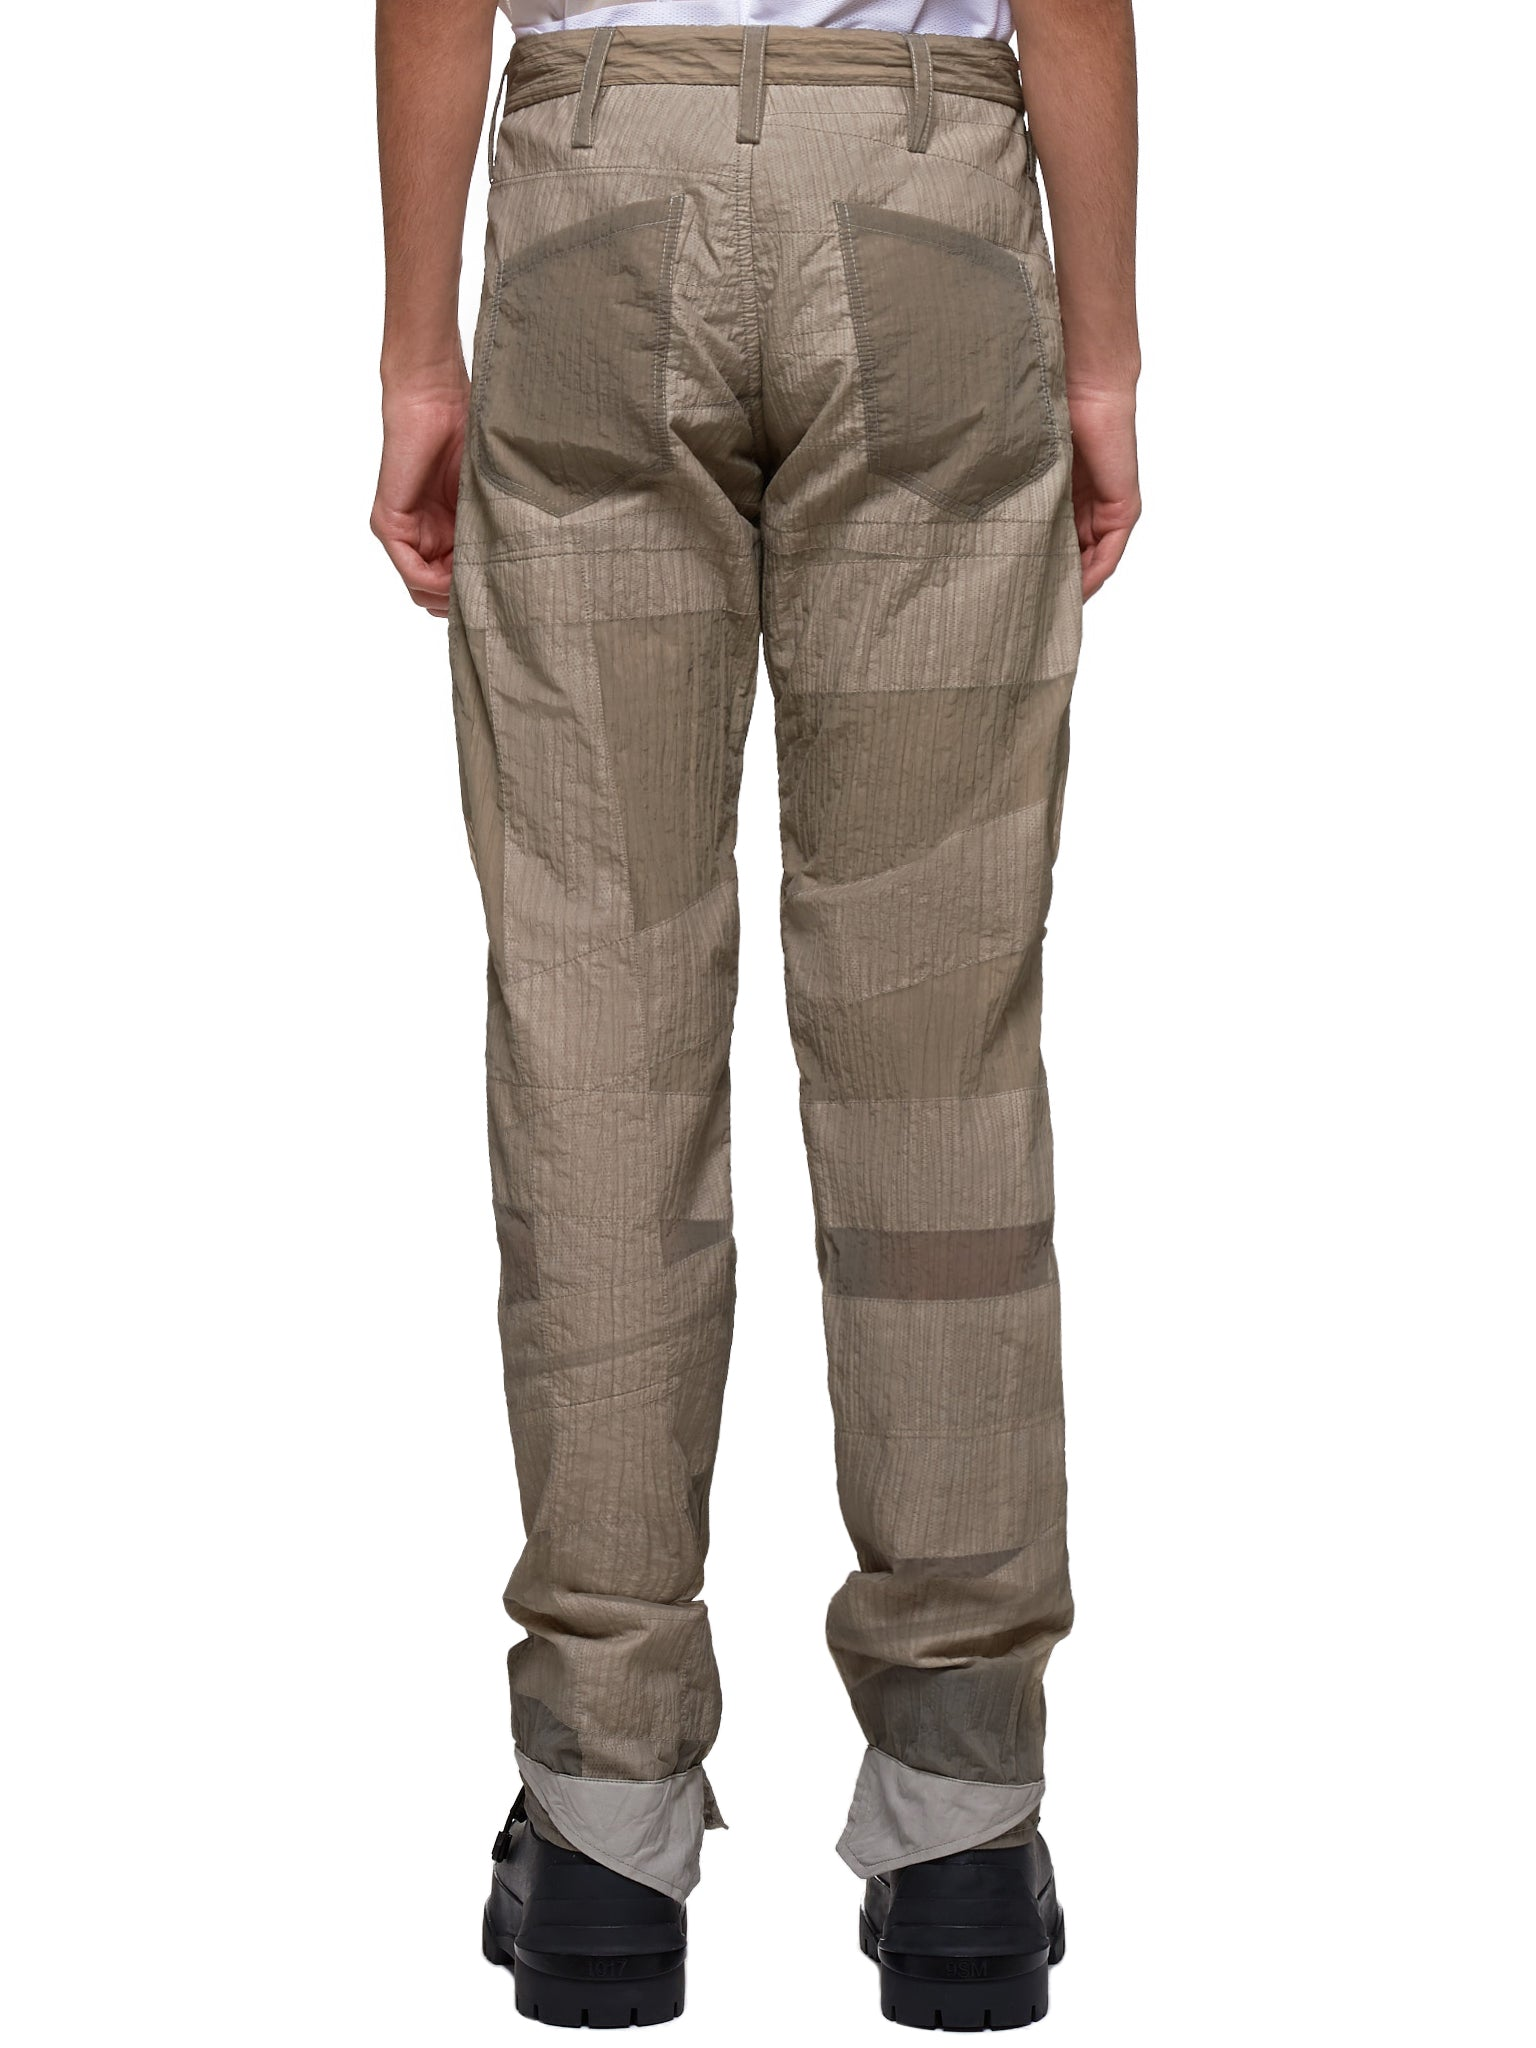 Reflective Nastro Bandage Wrapped Trousers (rRSPTPS-N-LCP-31-BE-BEIGE)